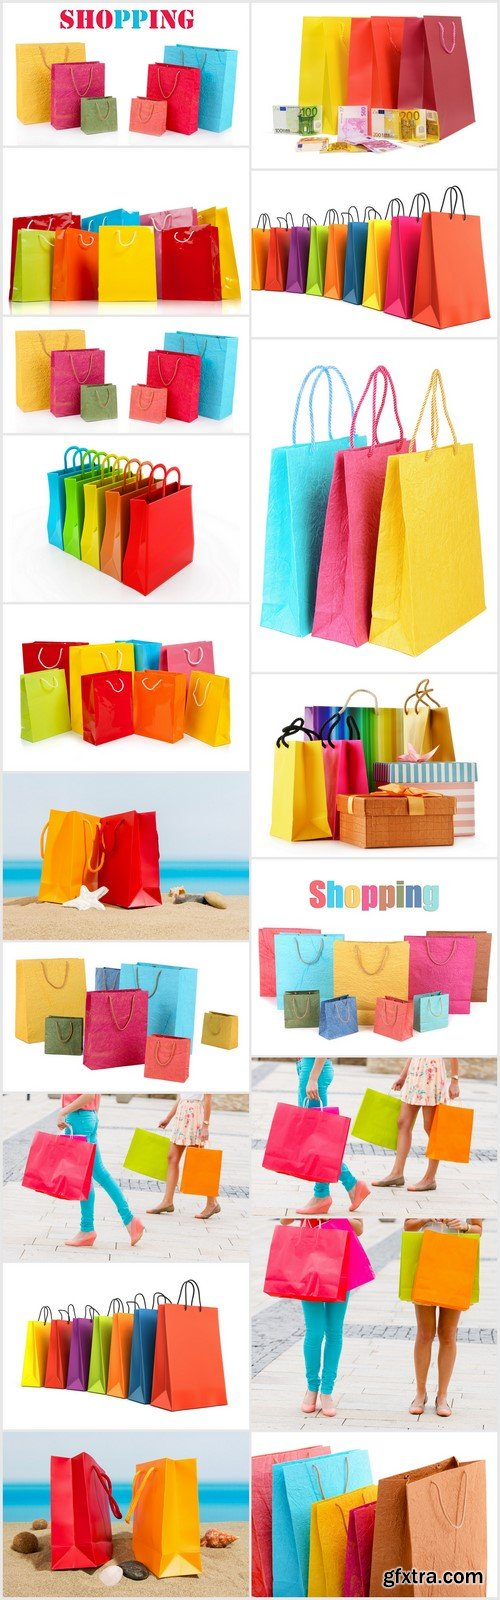 3d render of colorful shopping bags 18X JPEG